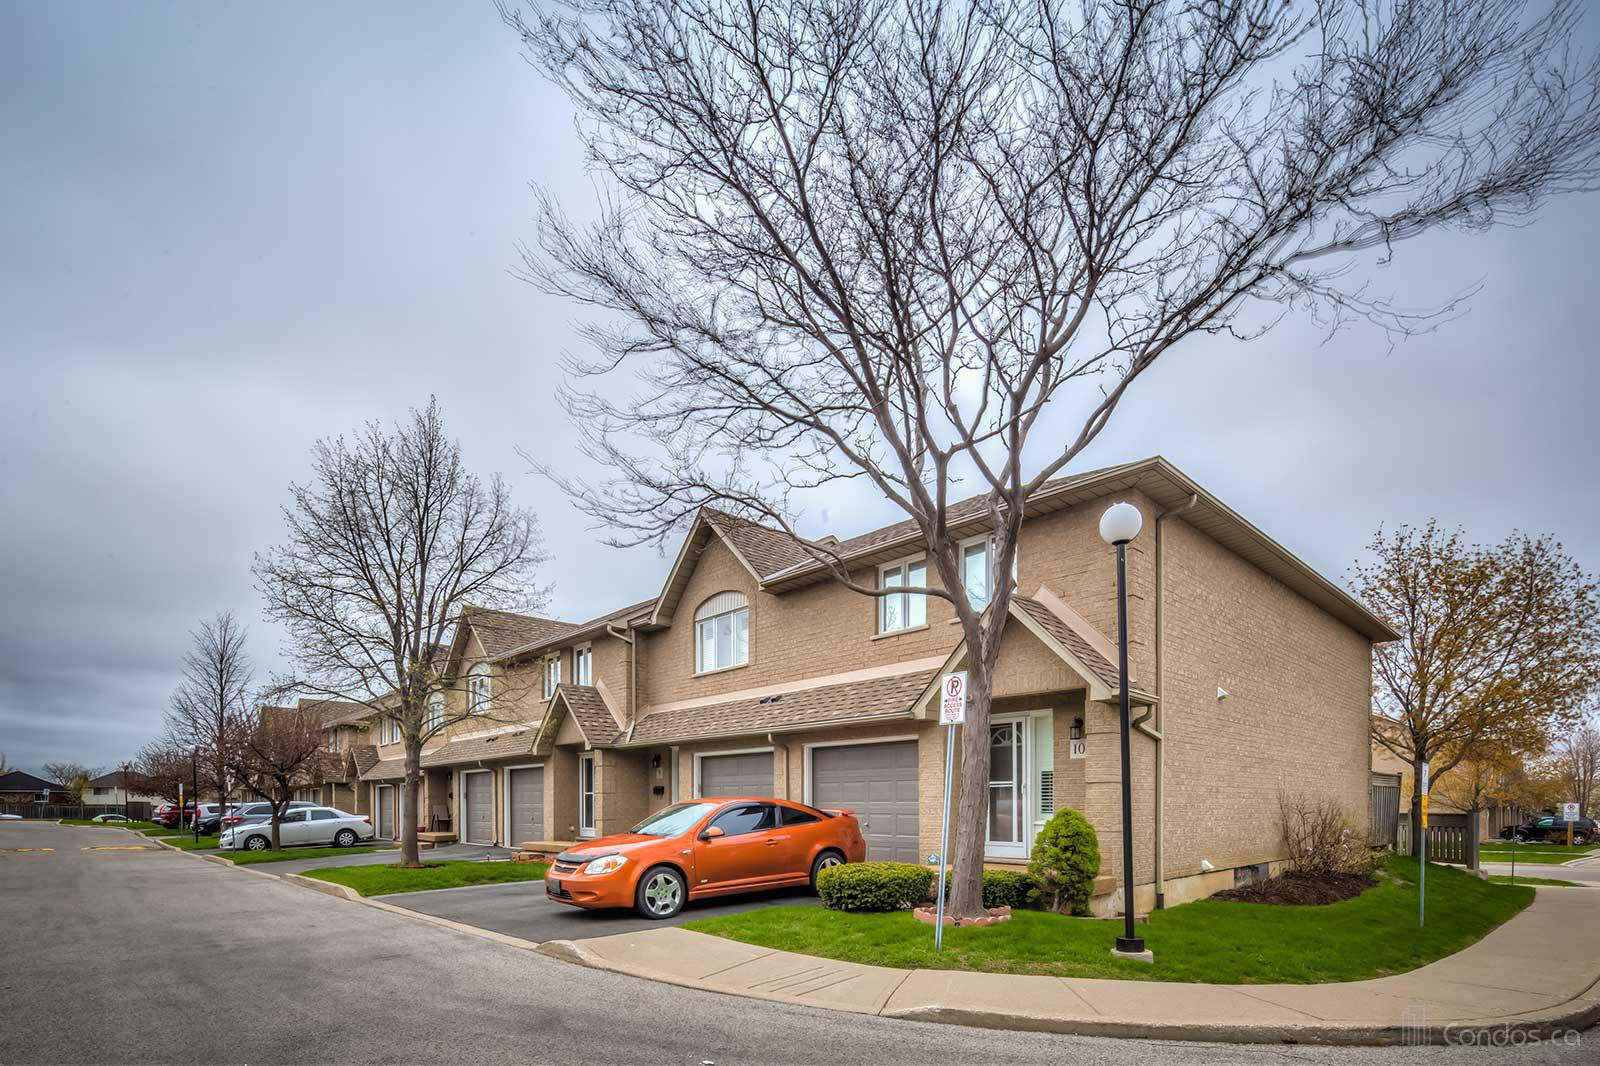 100 Vineberg Condos at 100 Vineberg Dr, Glanbrook 1